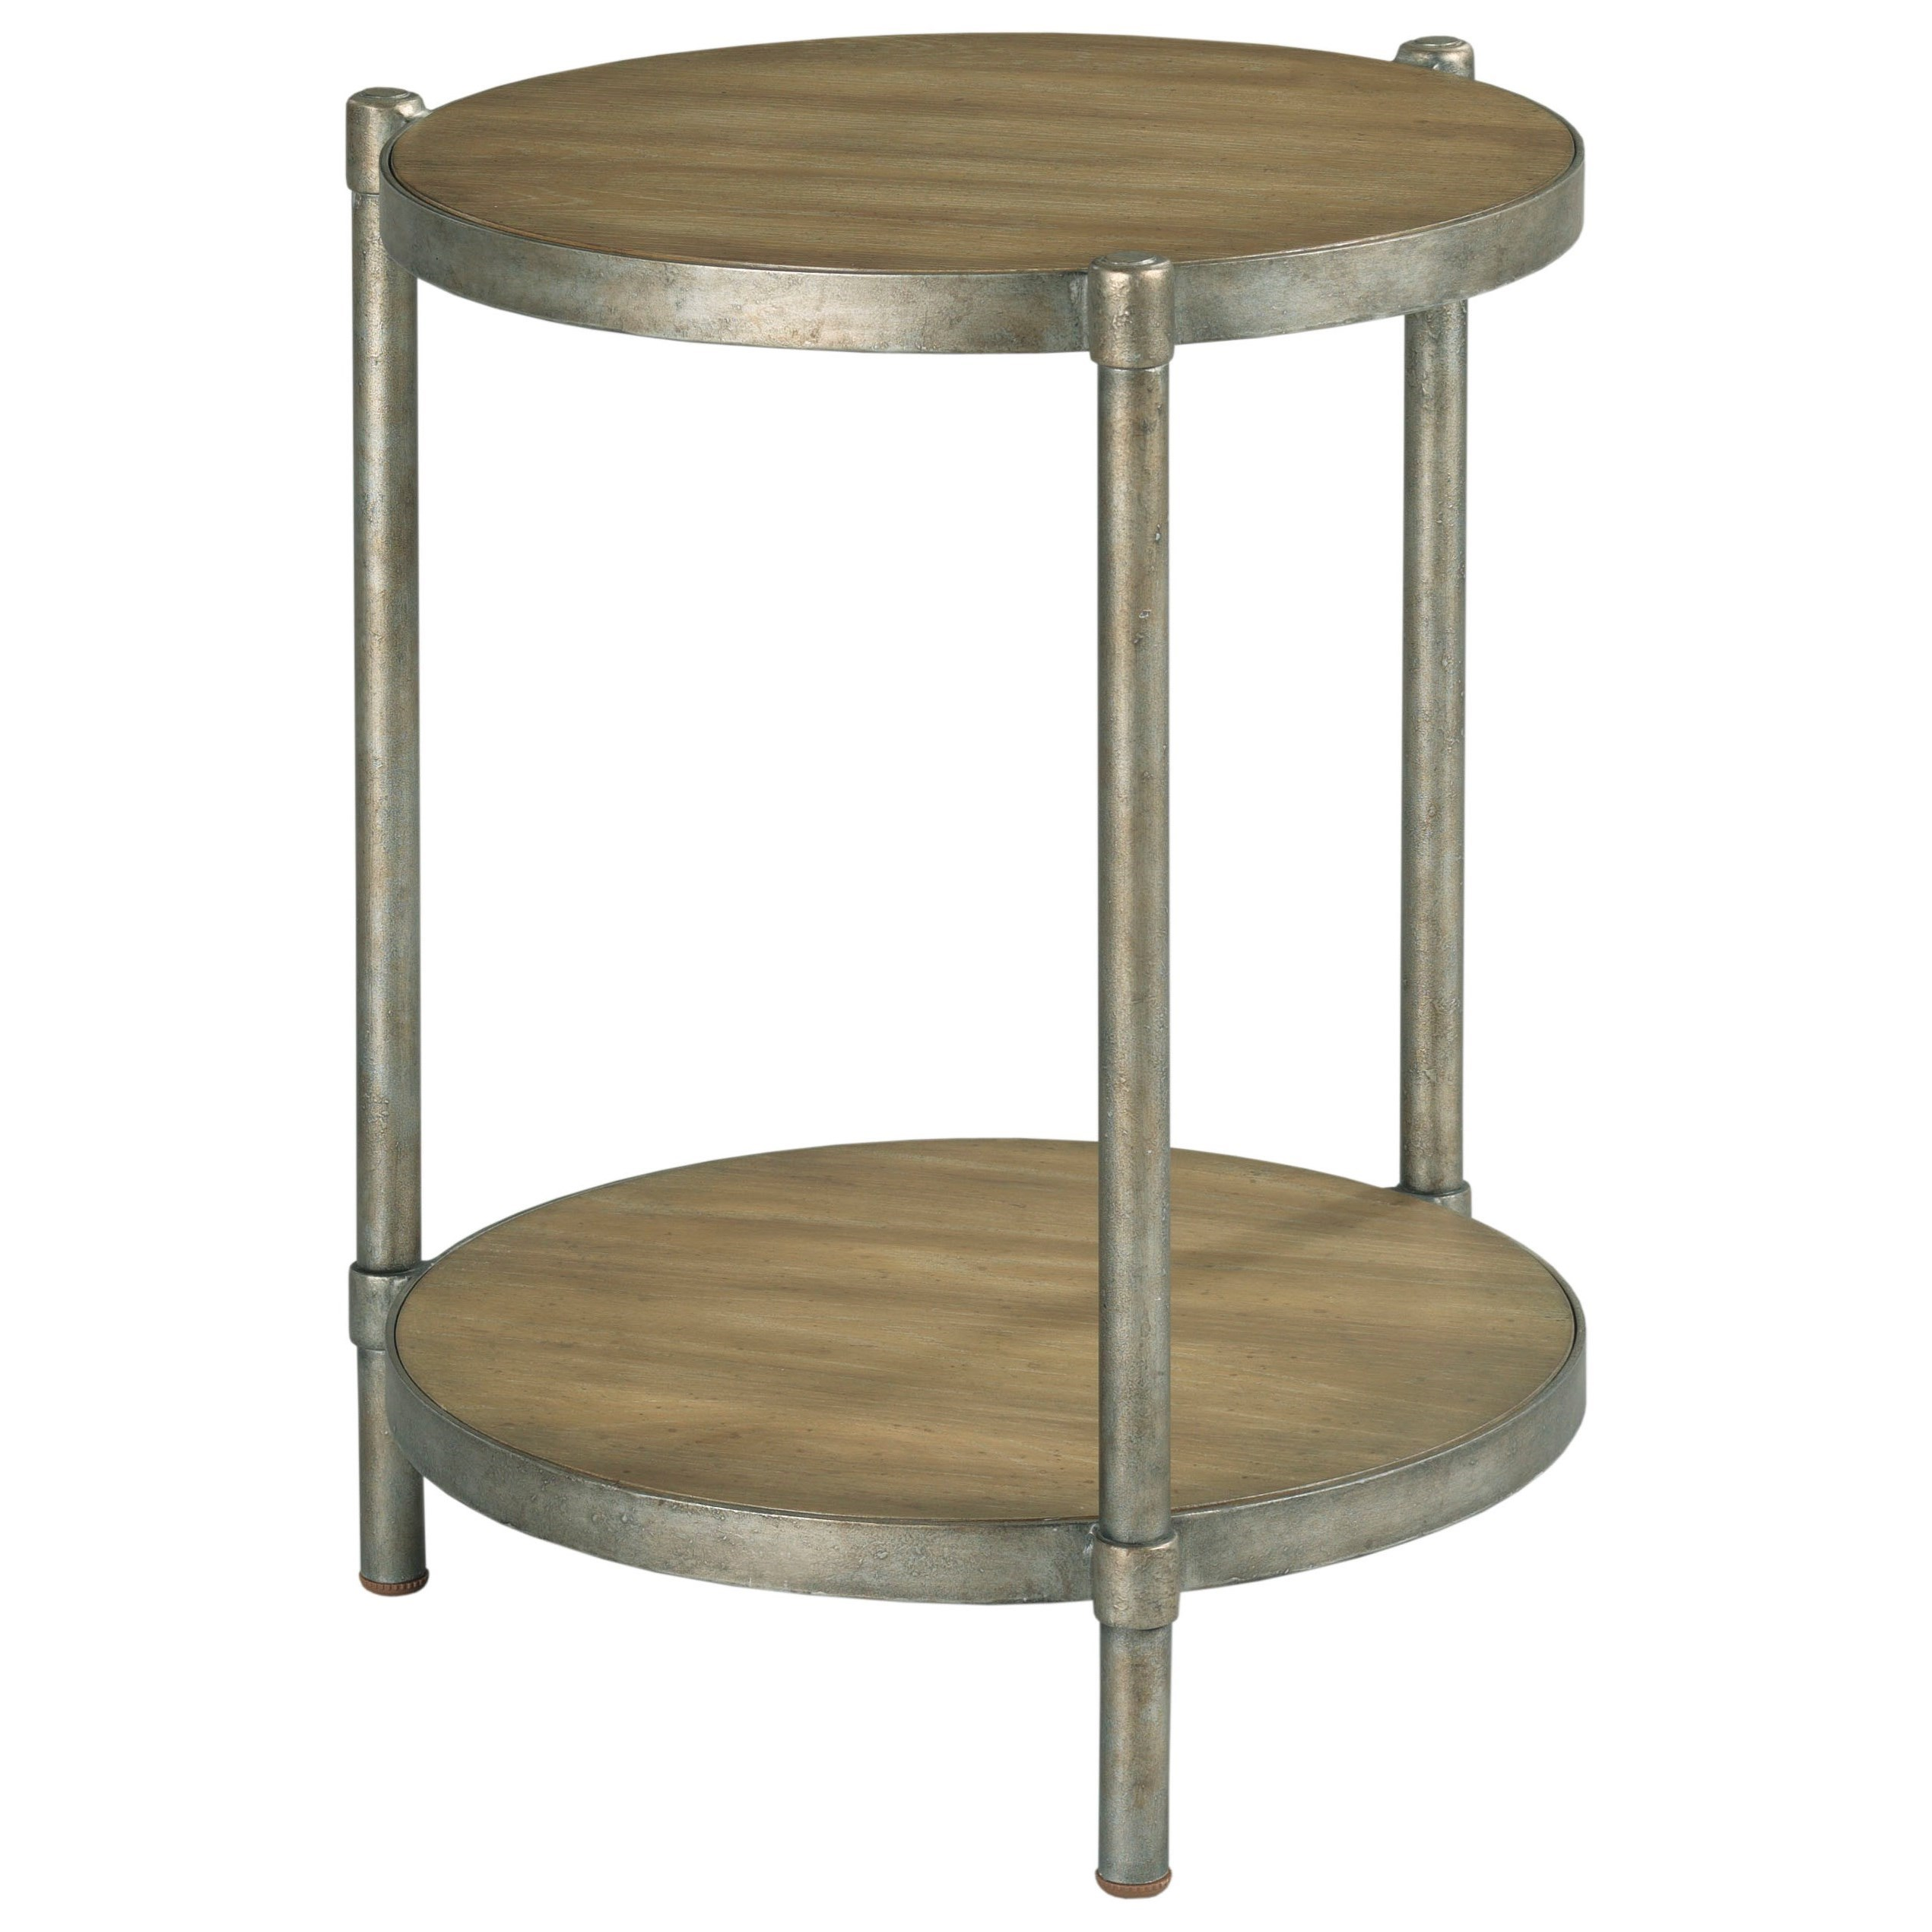 Astor Round Accent Table by Hammary at Stoney Creek Furniture